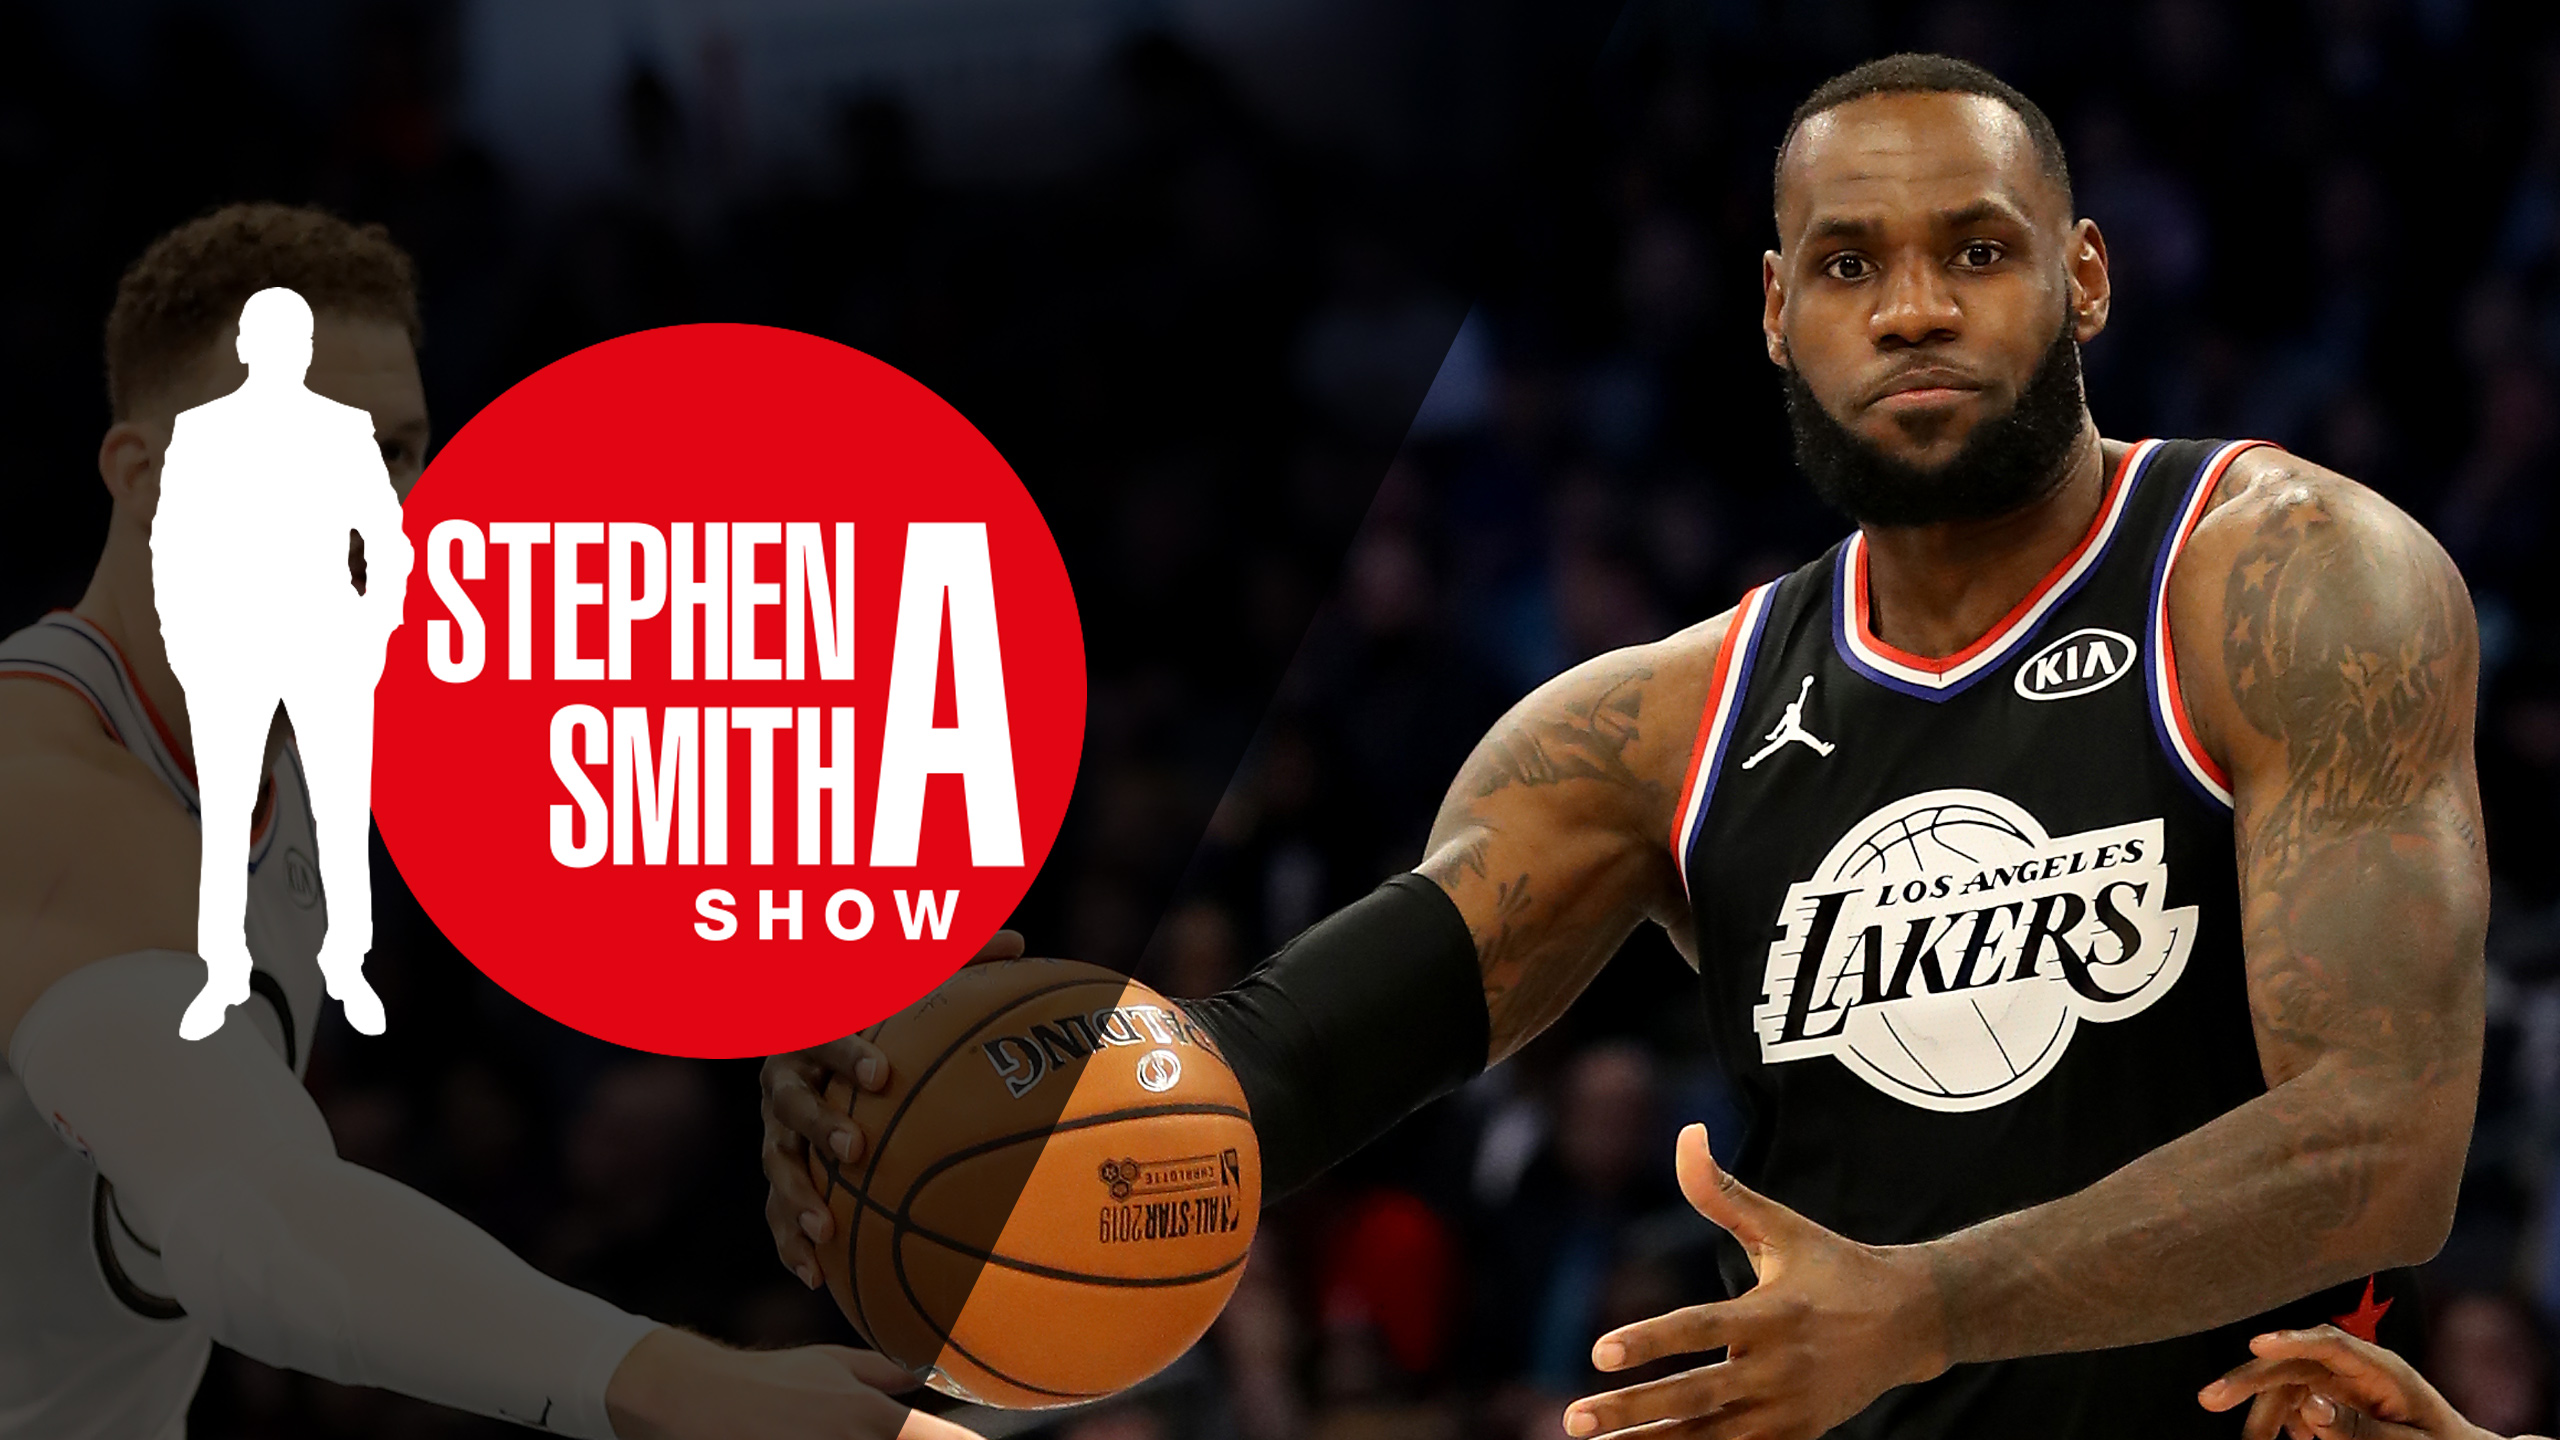 Mon, 2/18 - The Stephen A. Smith Show Presented by Progressive